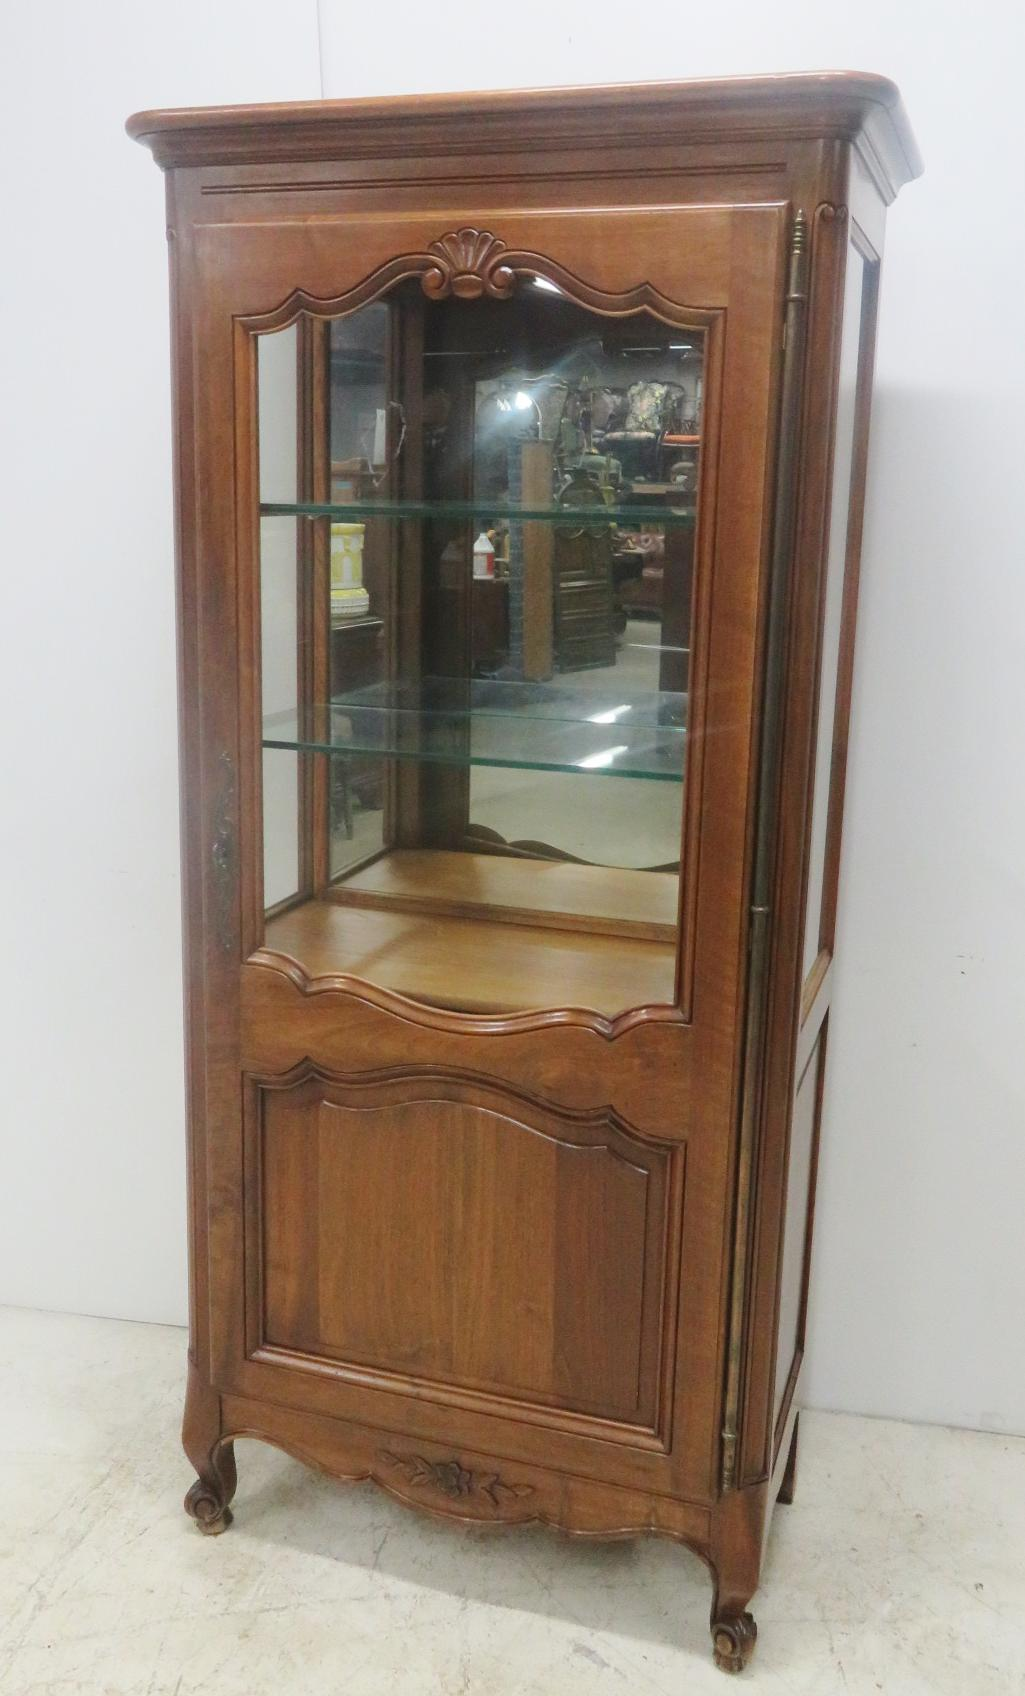 Superieur Country French Style Cherry China/curio Cabinet, Large Brass Hardware Shell  Carved On Door